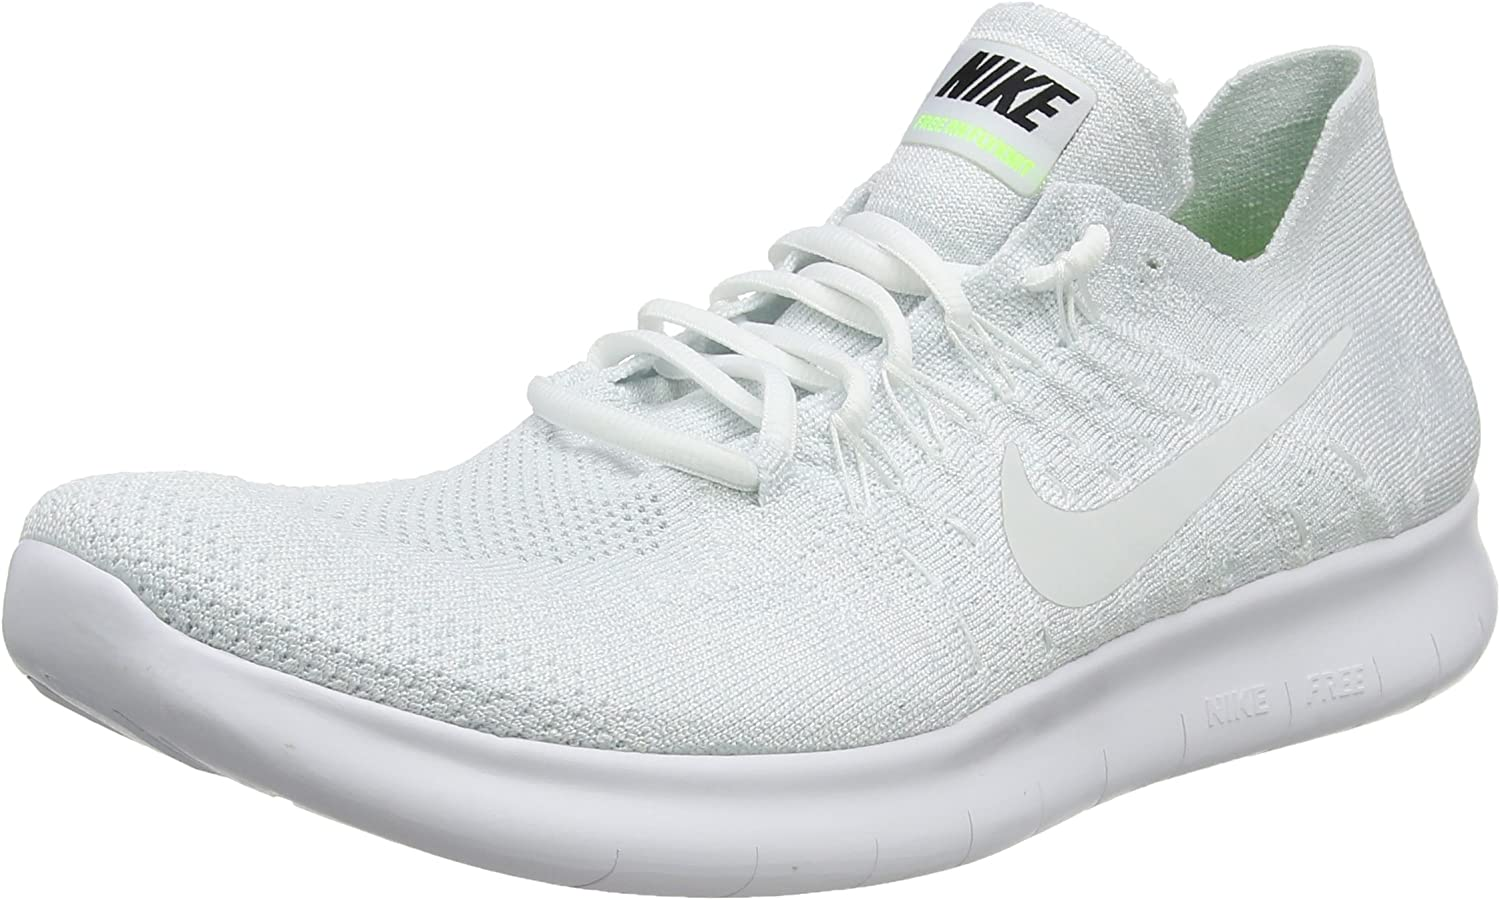 sperone Gusto Cannone  Amazon.com | Nike Men's Free RN Flyknit 2017 Running Shoe | Basketball